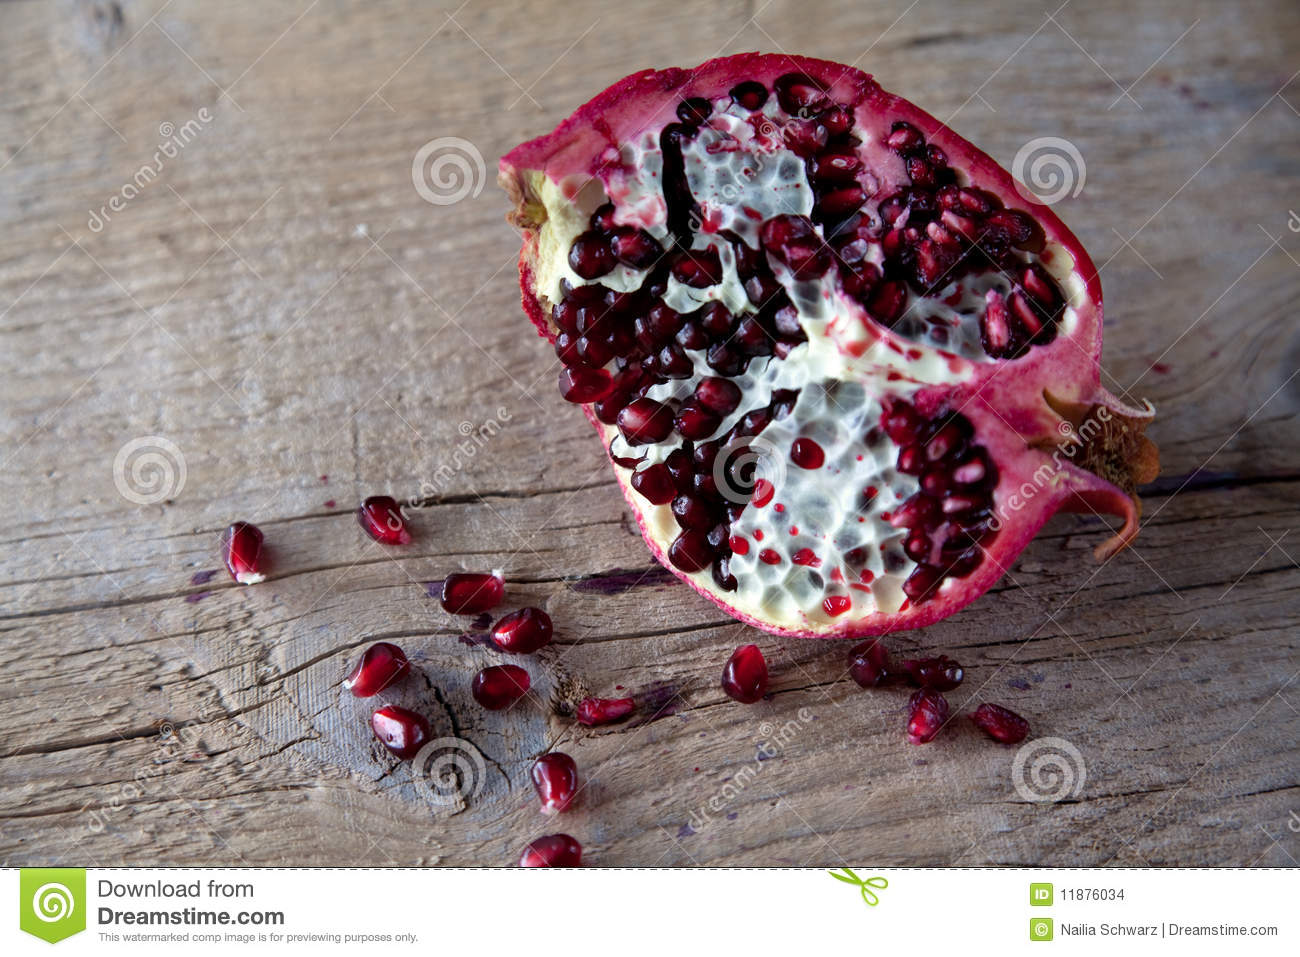 Pomegranate with arils on wooden board